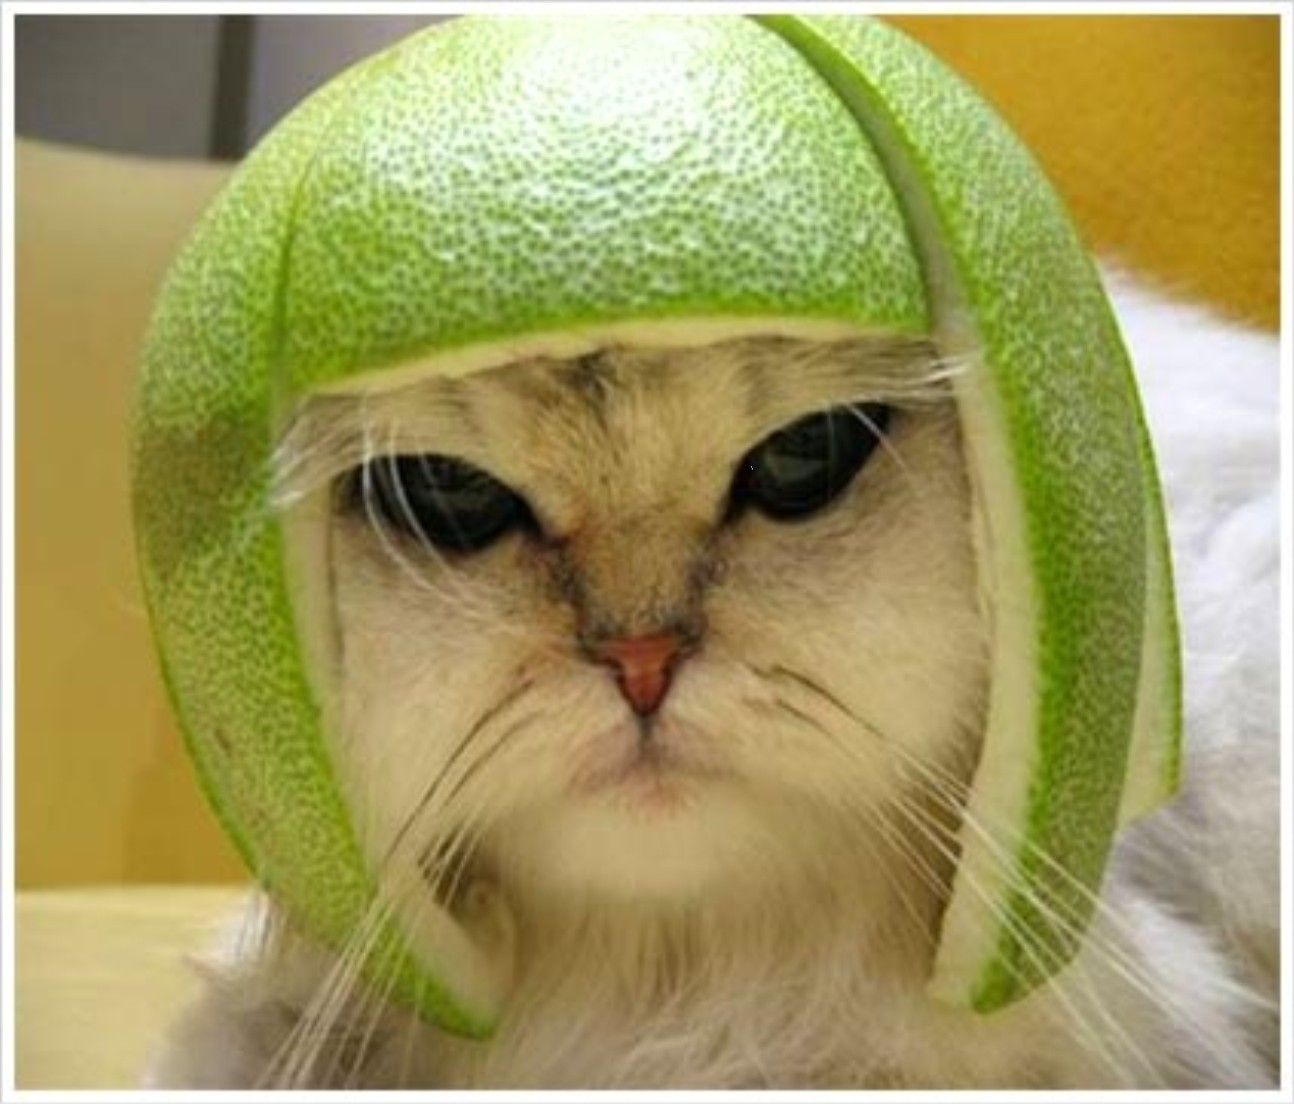 Picture Of Cat With Melon On Head